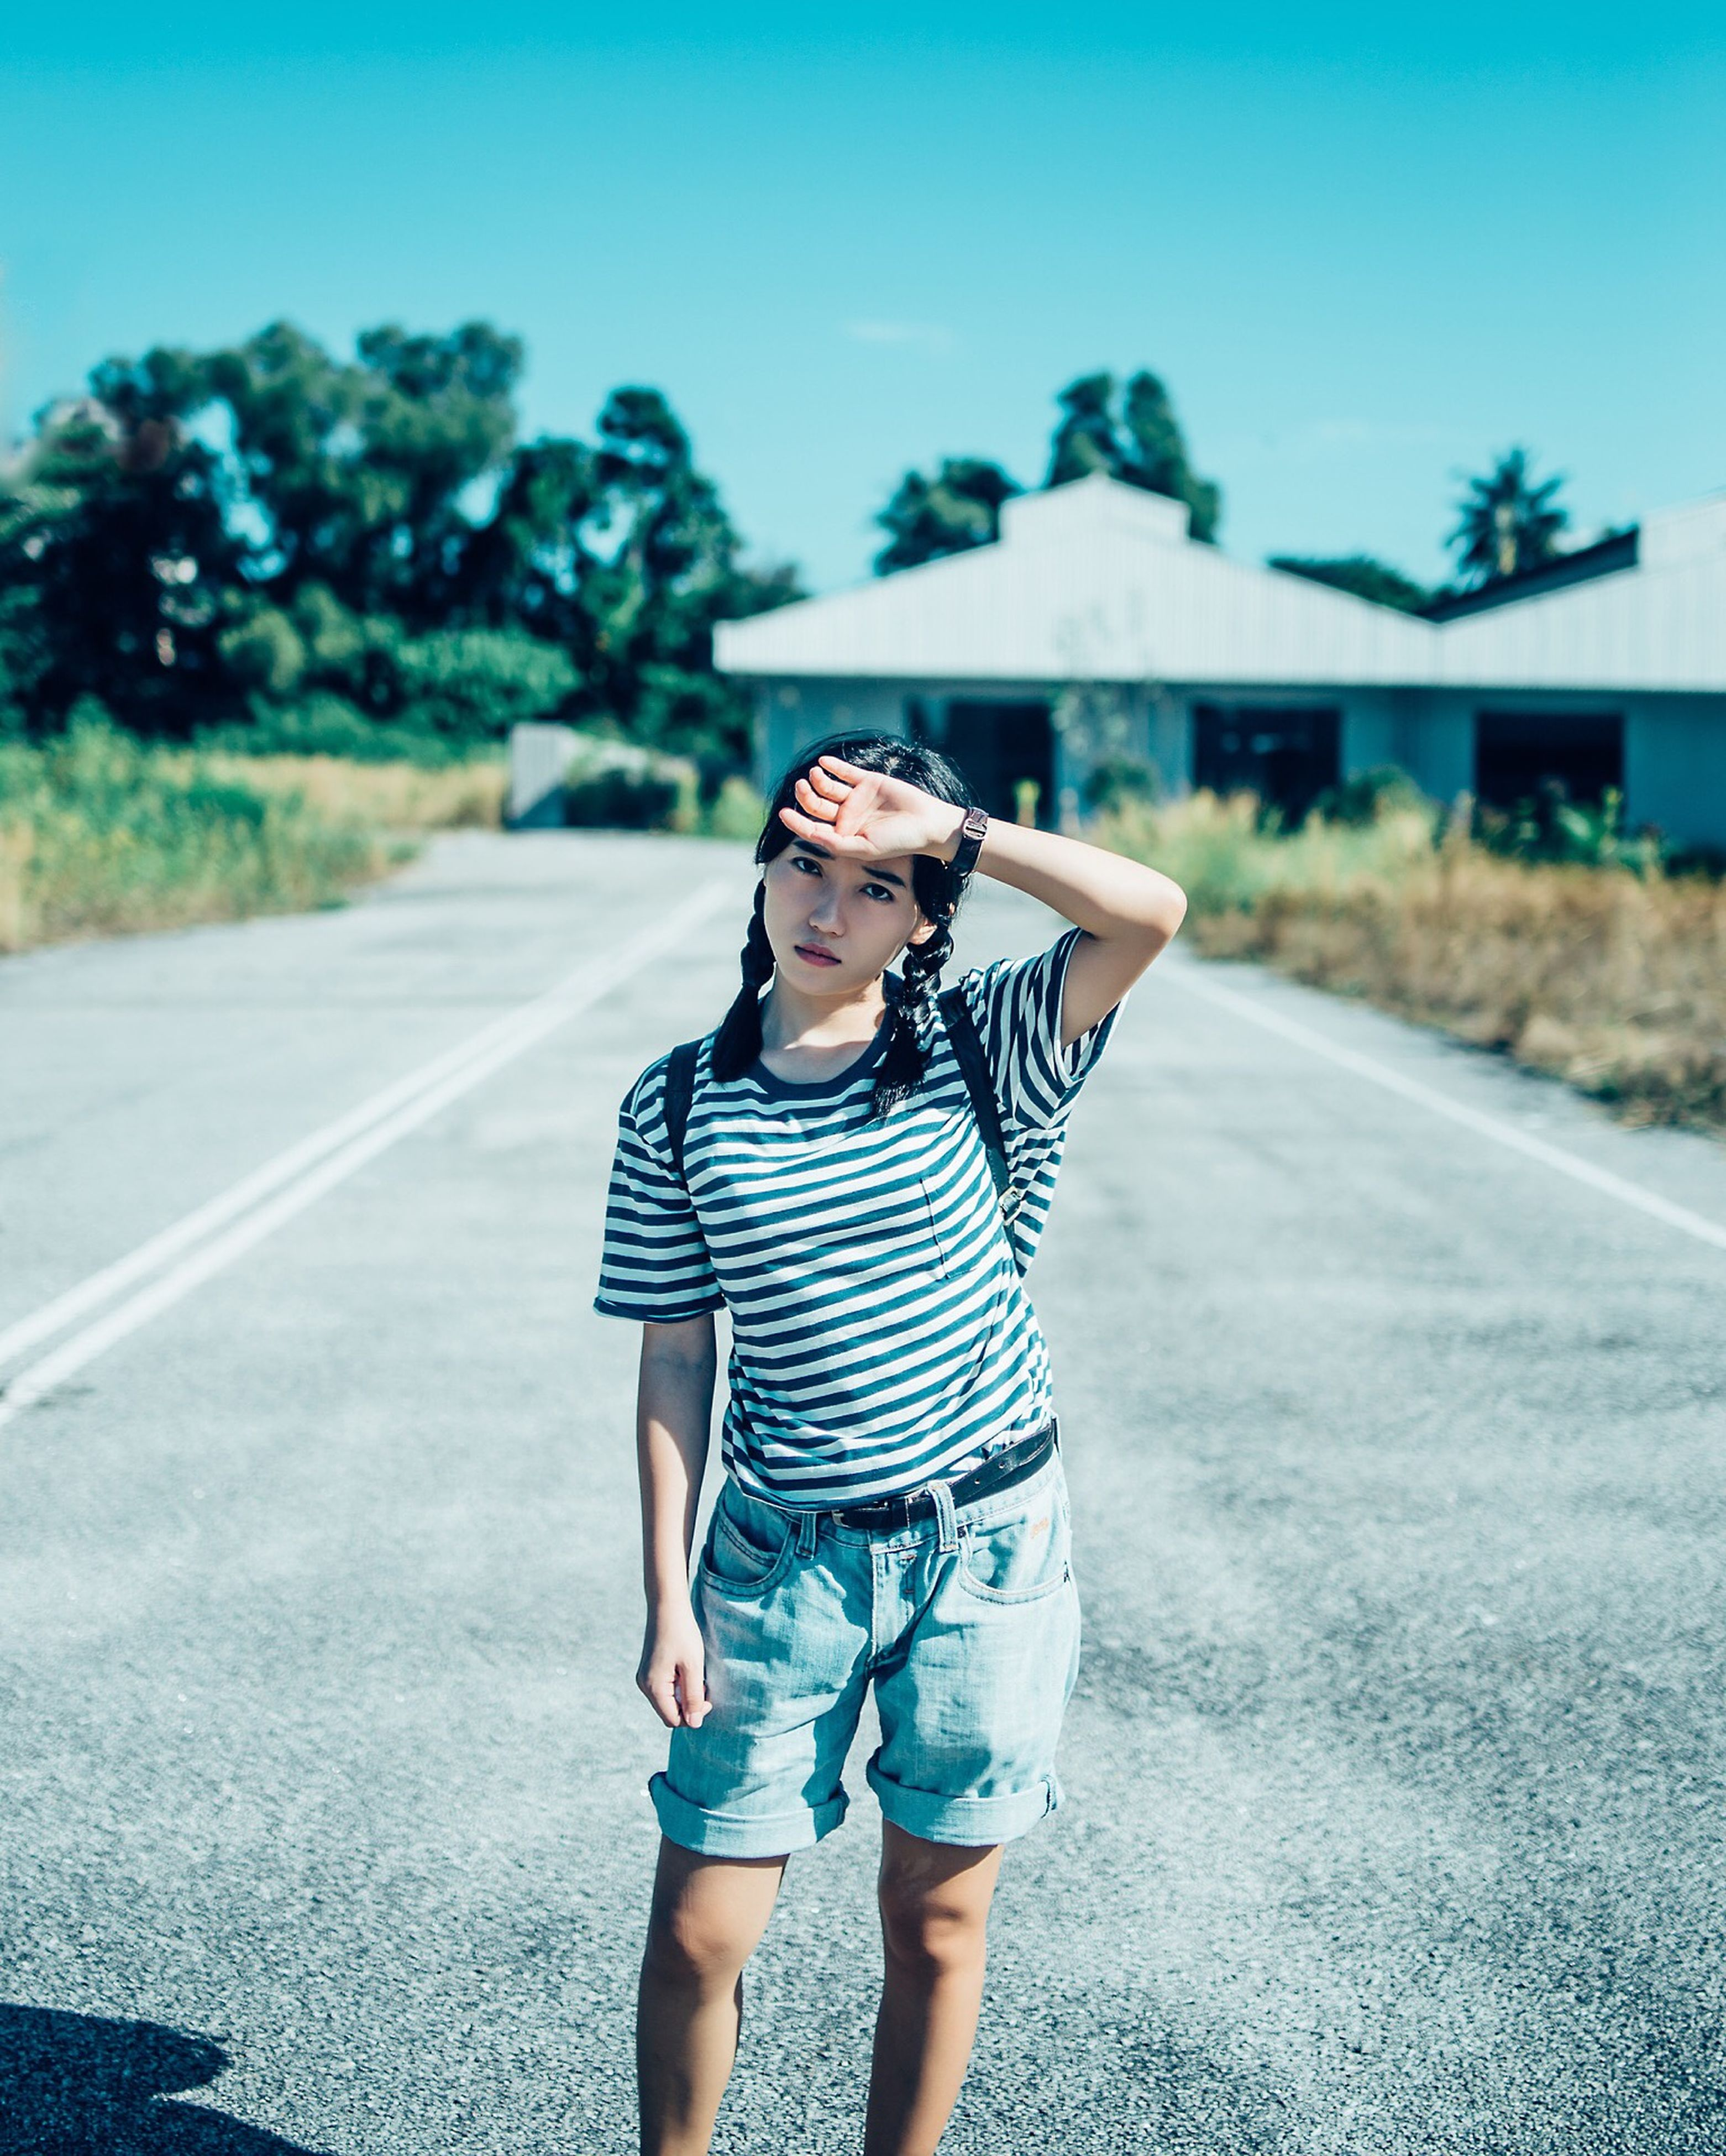 lifestyles, road, leisure activity, casual clothing, young adult, standing, sunlight, street, rear view, young women, transportation, person, day, full length, clear sky, outdoors, front view, sky